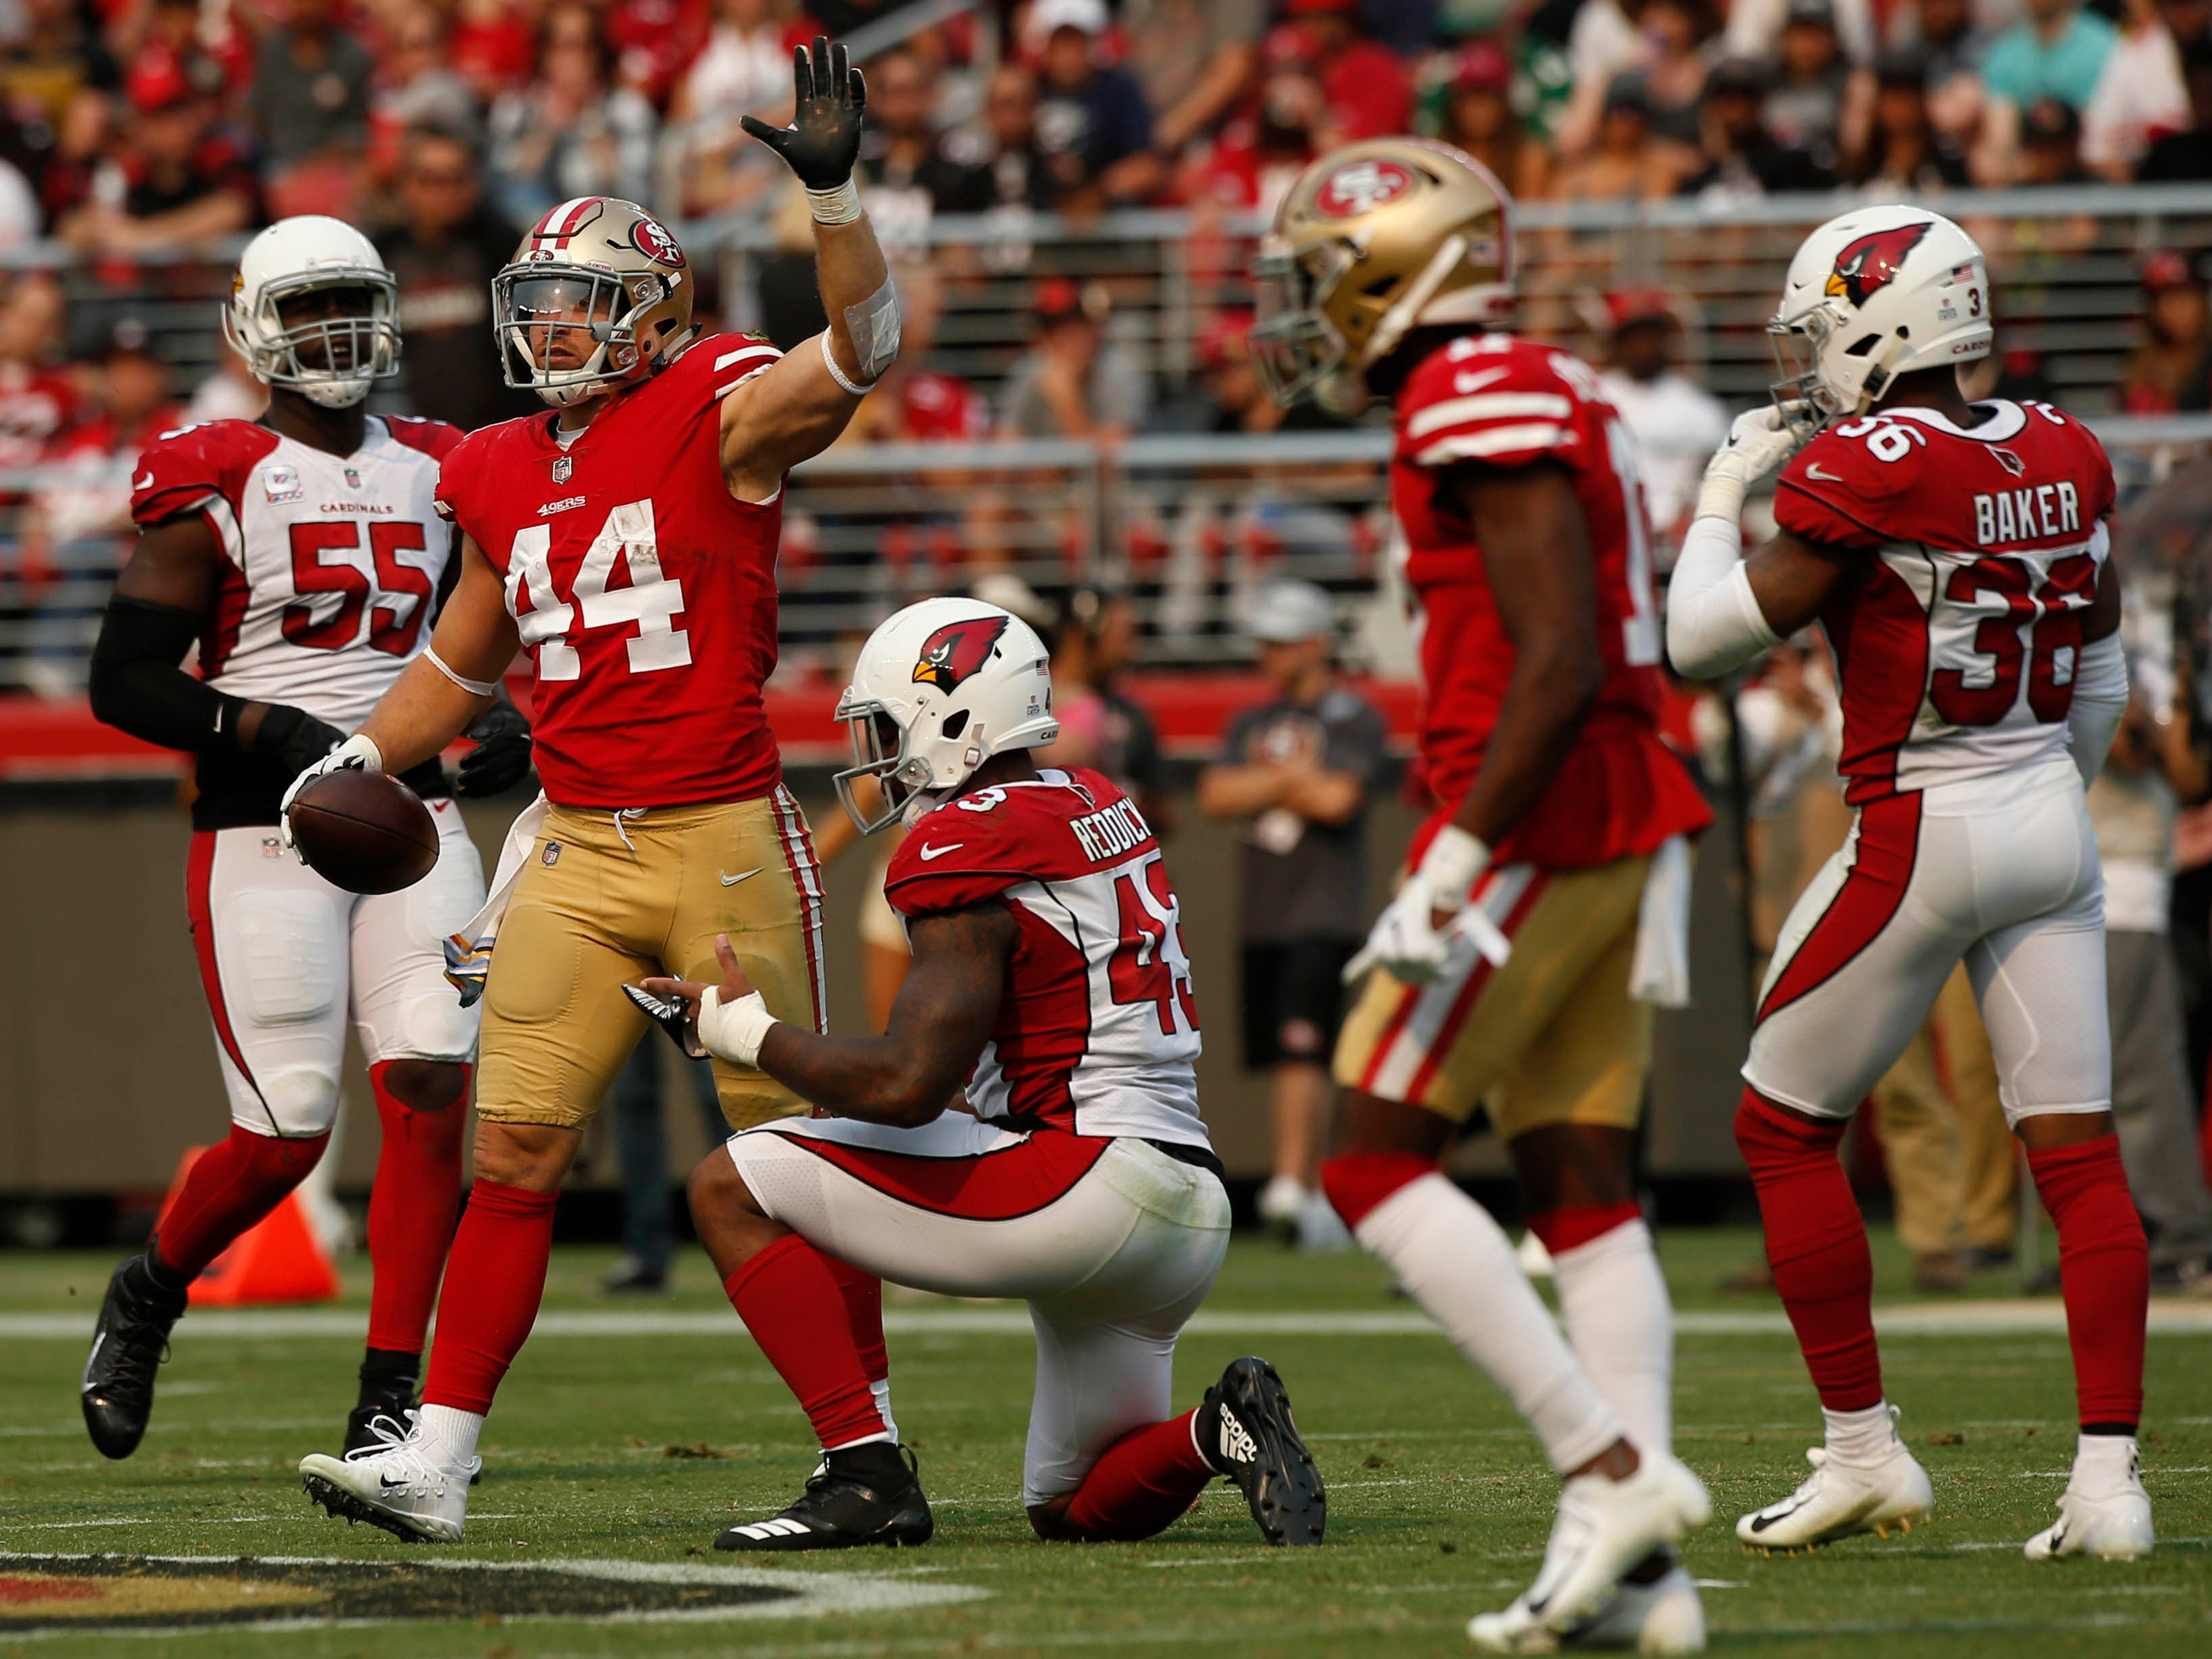 Oct 7, 2018; Santa Clara, CA, USA; San Francisco 49ers running back Kyle Juszczyk (44) reacts after picking up a first down against the Arizona Cardinals in the second quarter at Levi's Stadium.